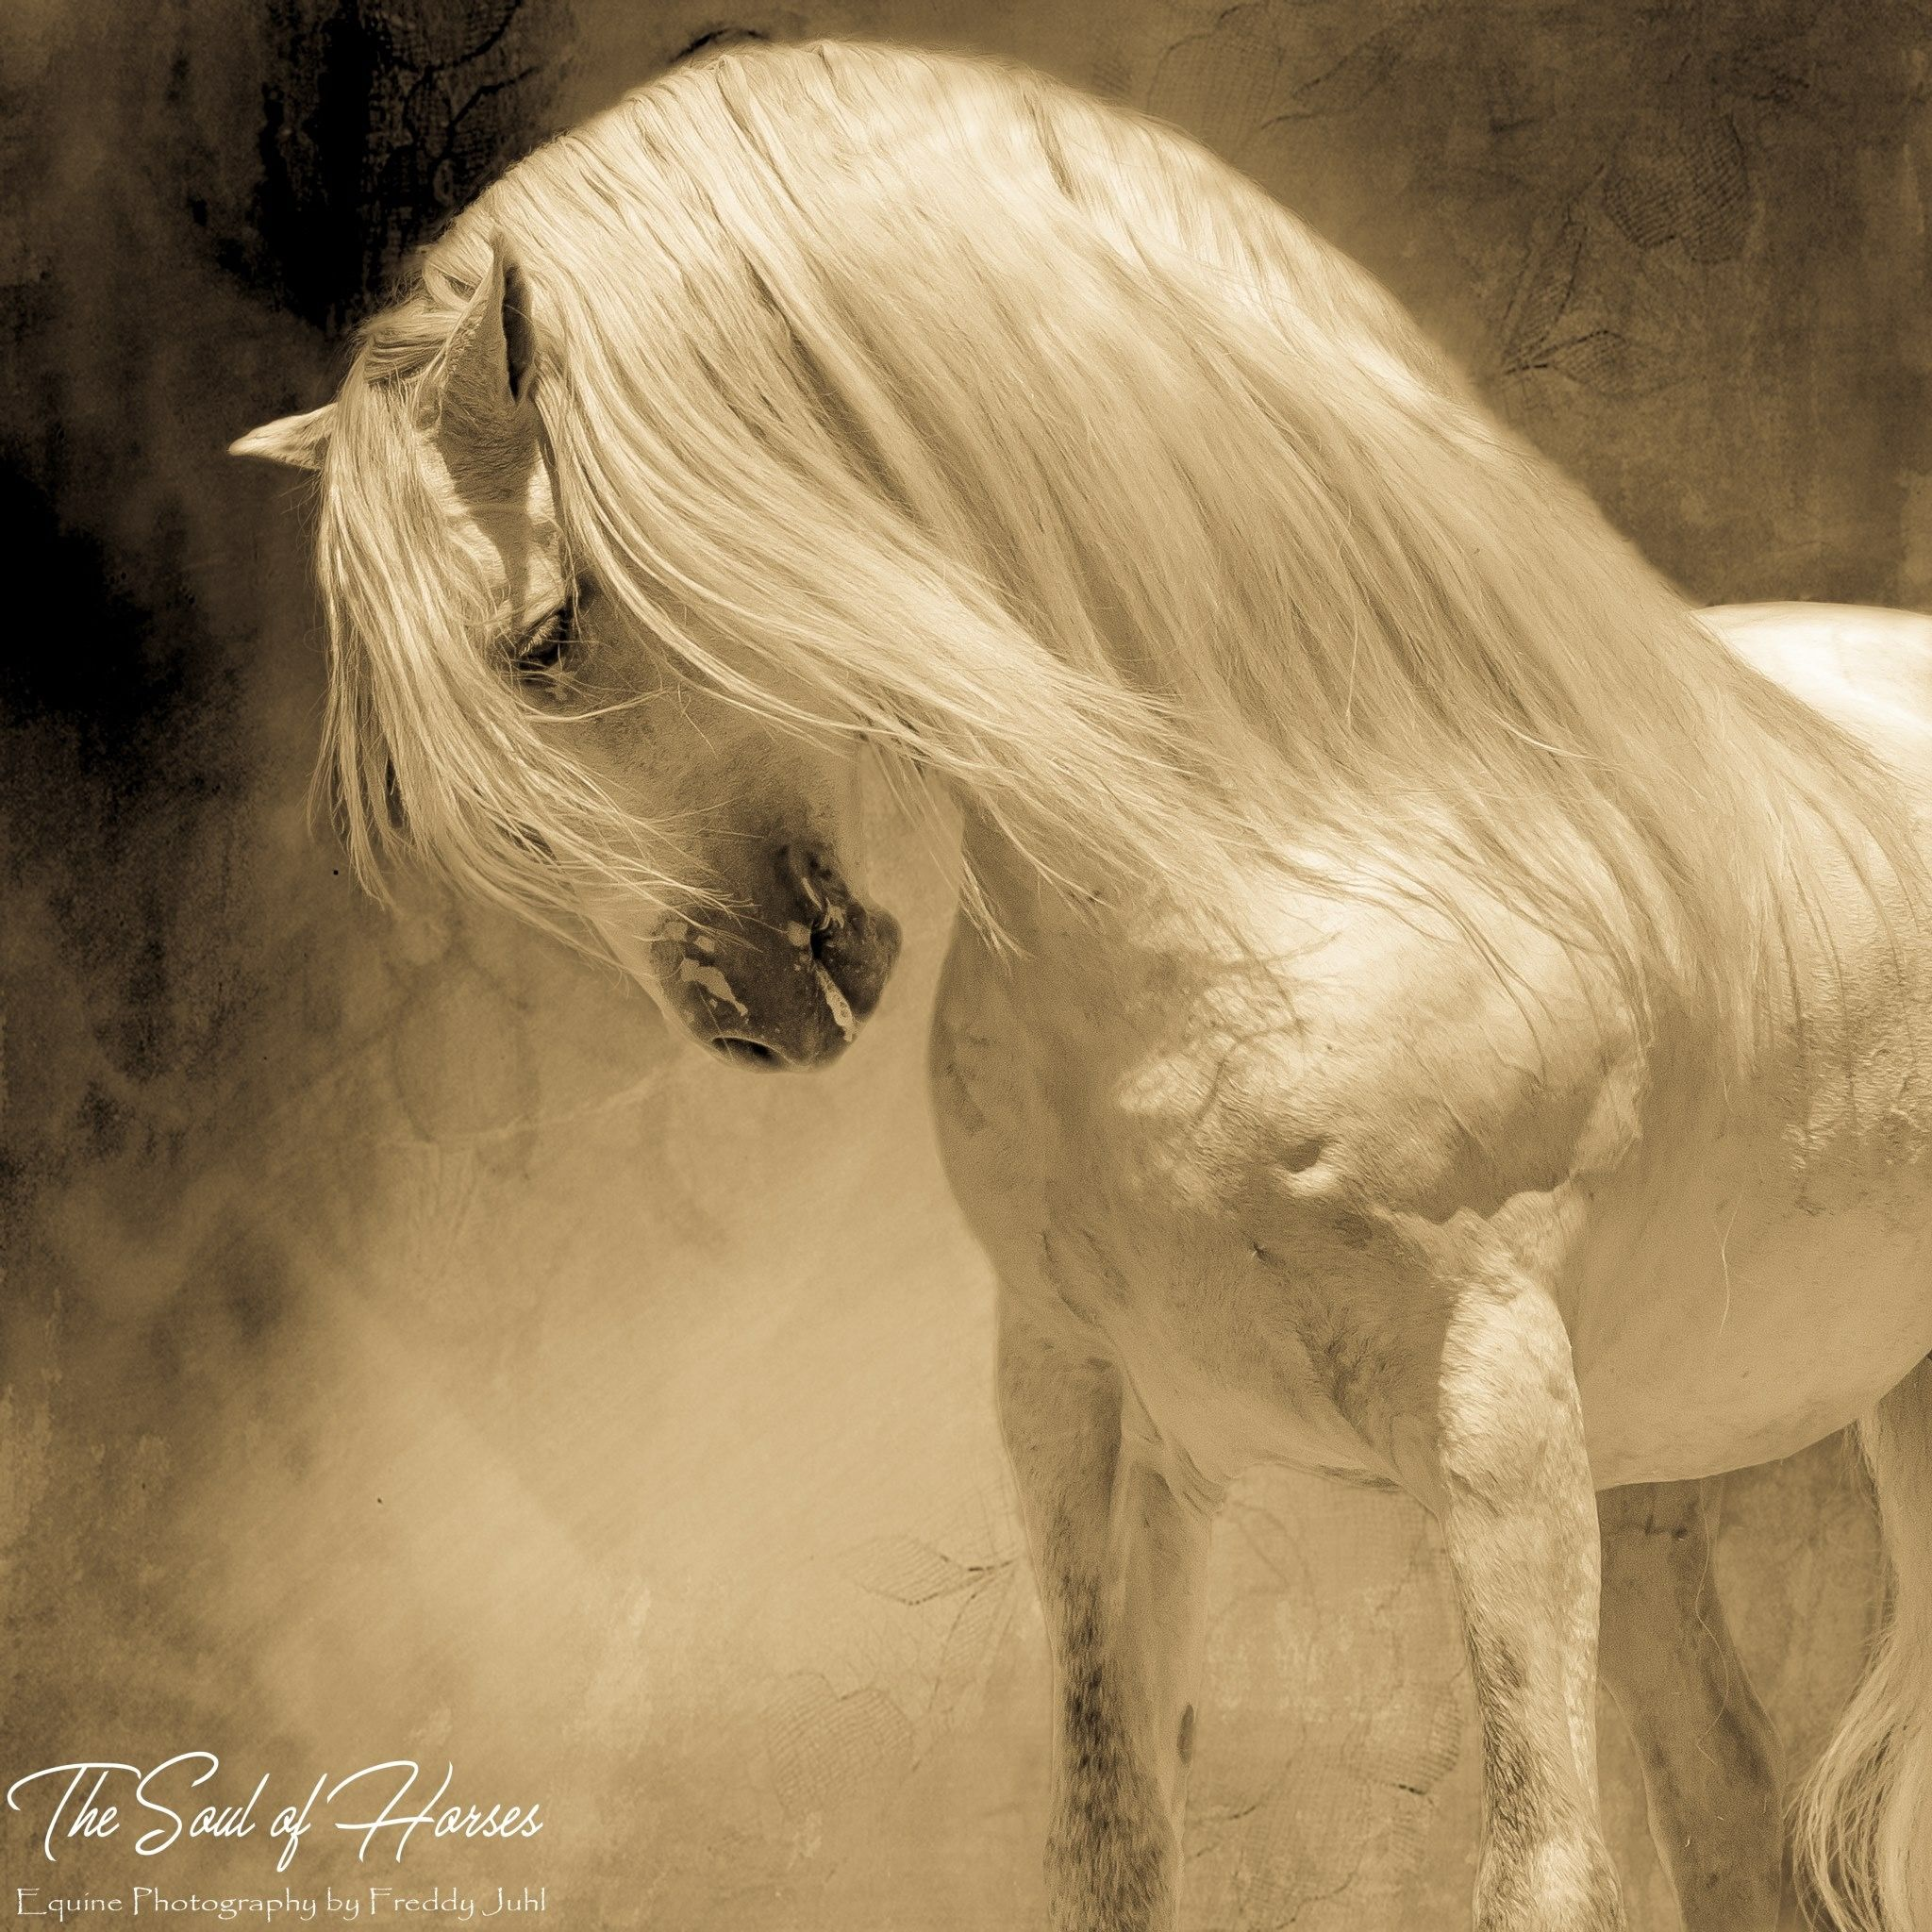 Gorgeous horse bowing it's head with long flowing mane.